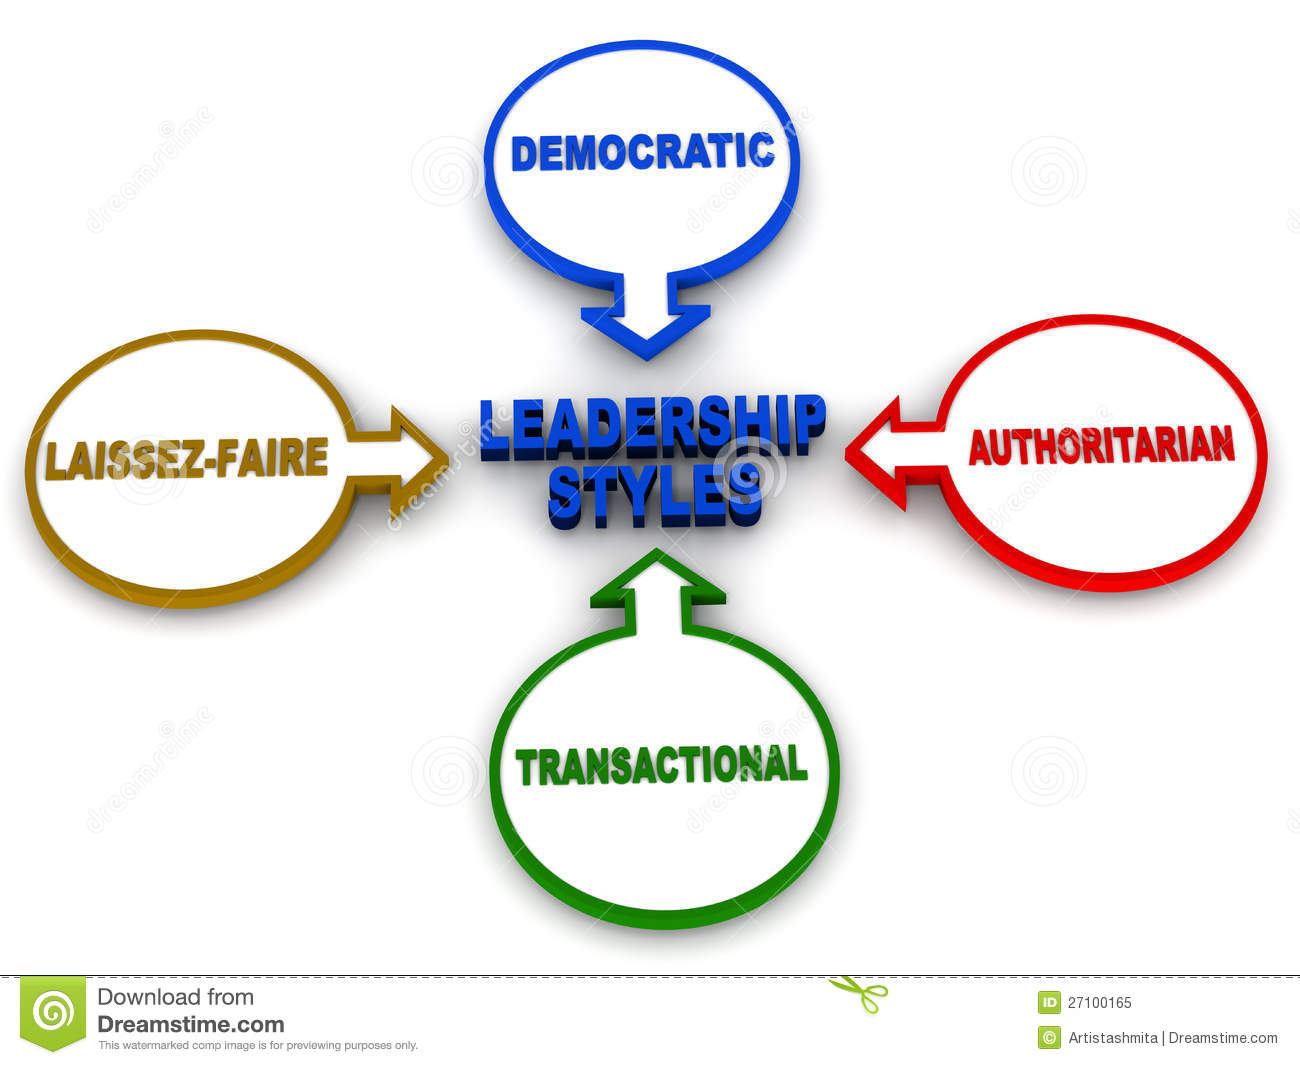 Styles of leadership, laissez-faire authoritarian transactional ...